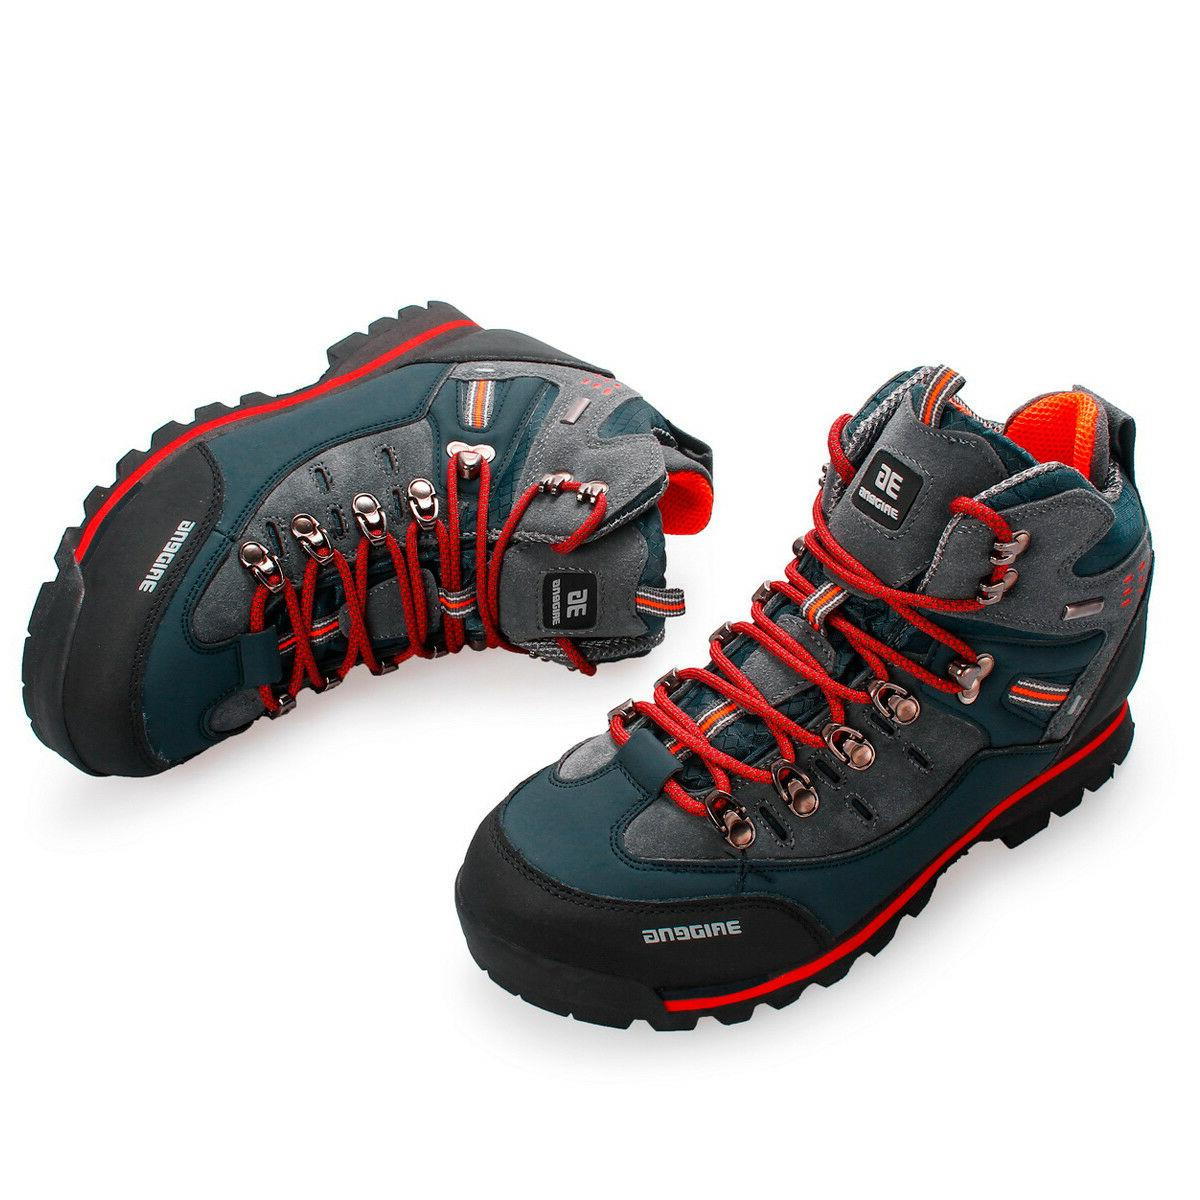 Men's Resistance Waterproof Climbing Boots